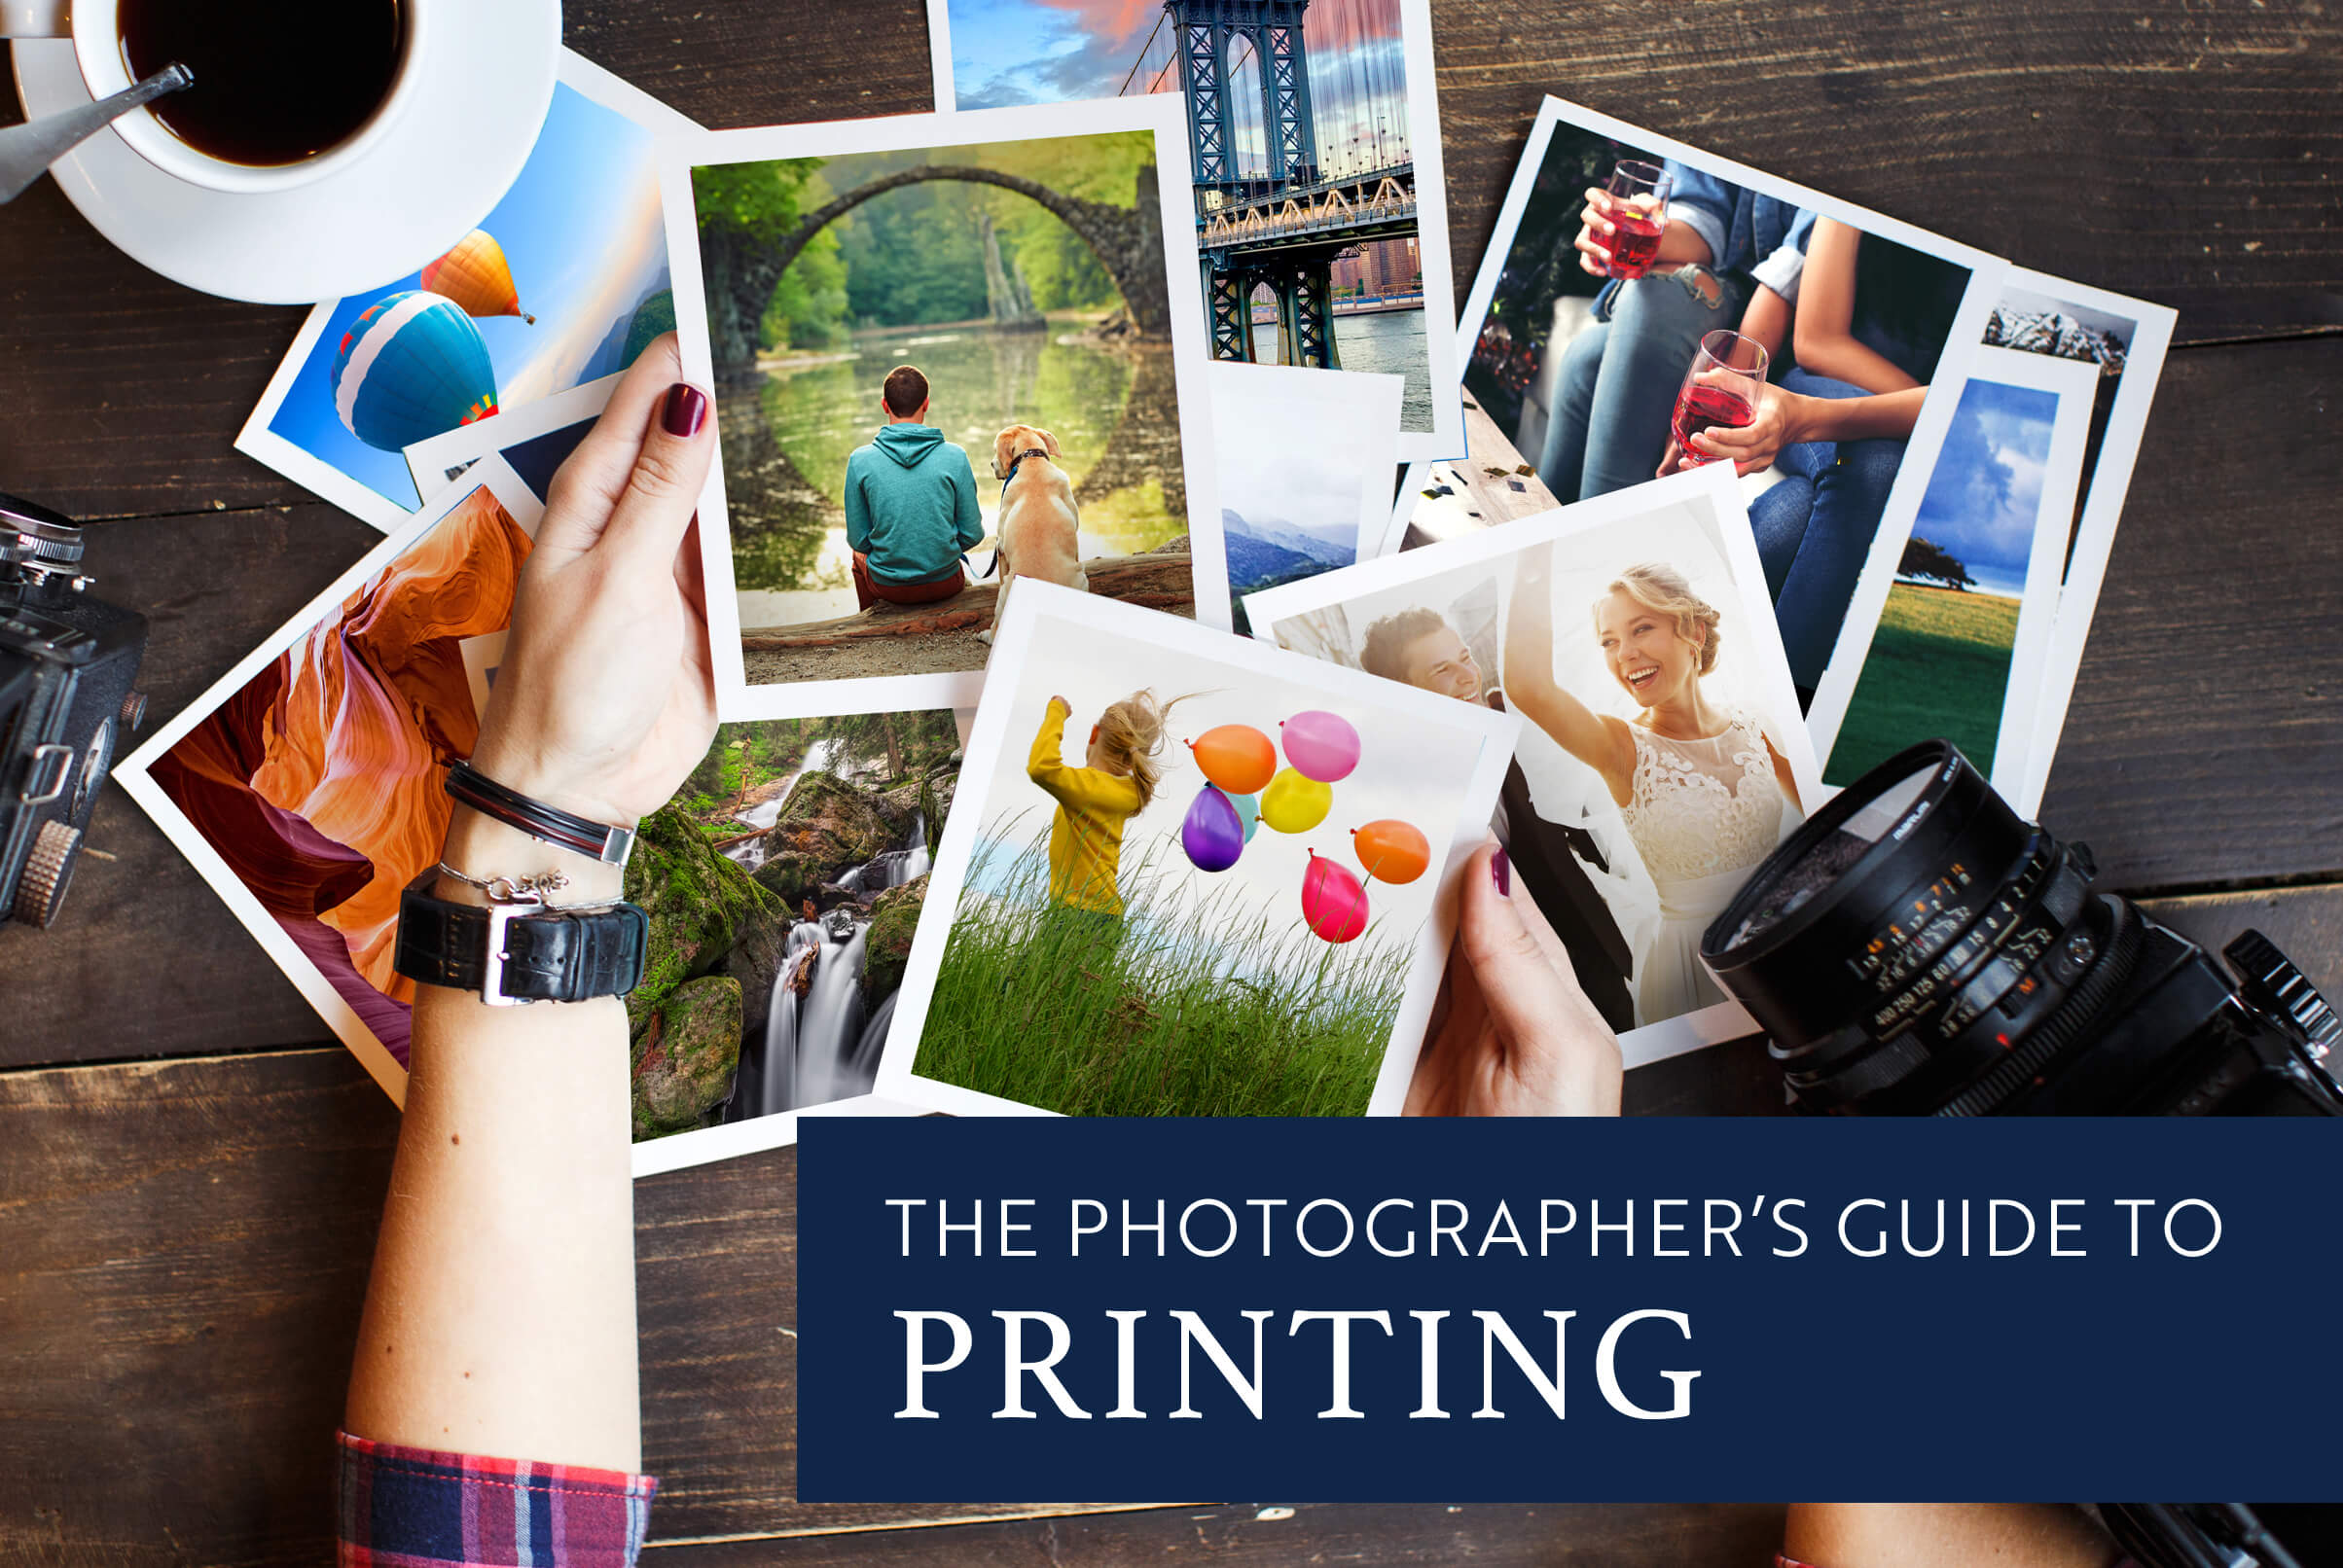 Guide to Printing Photos